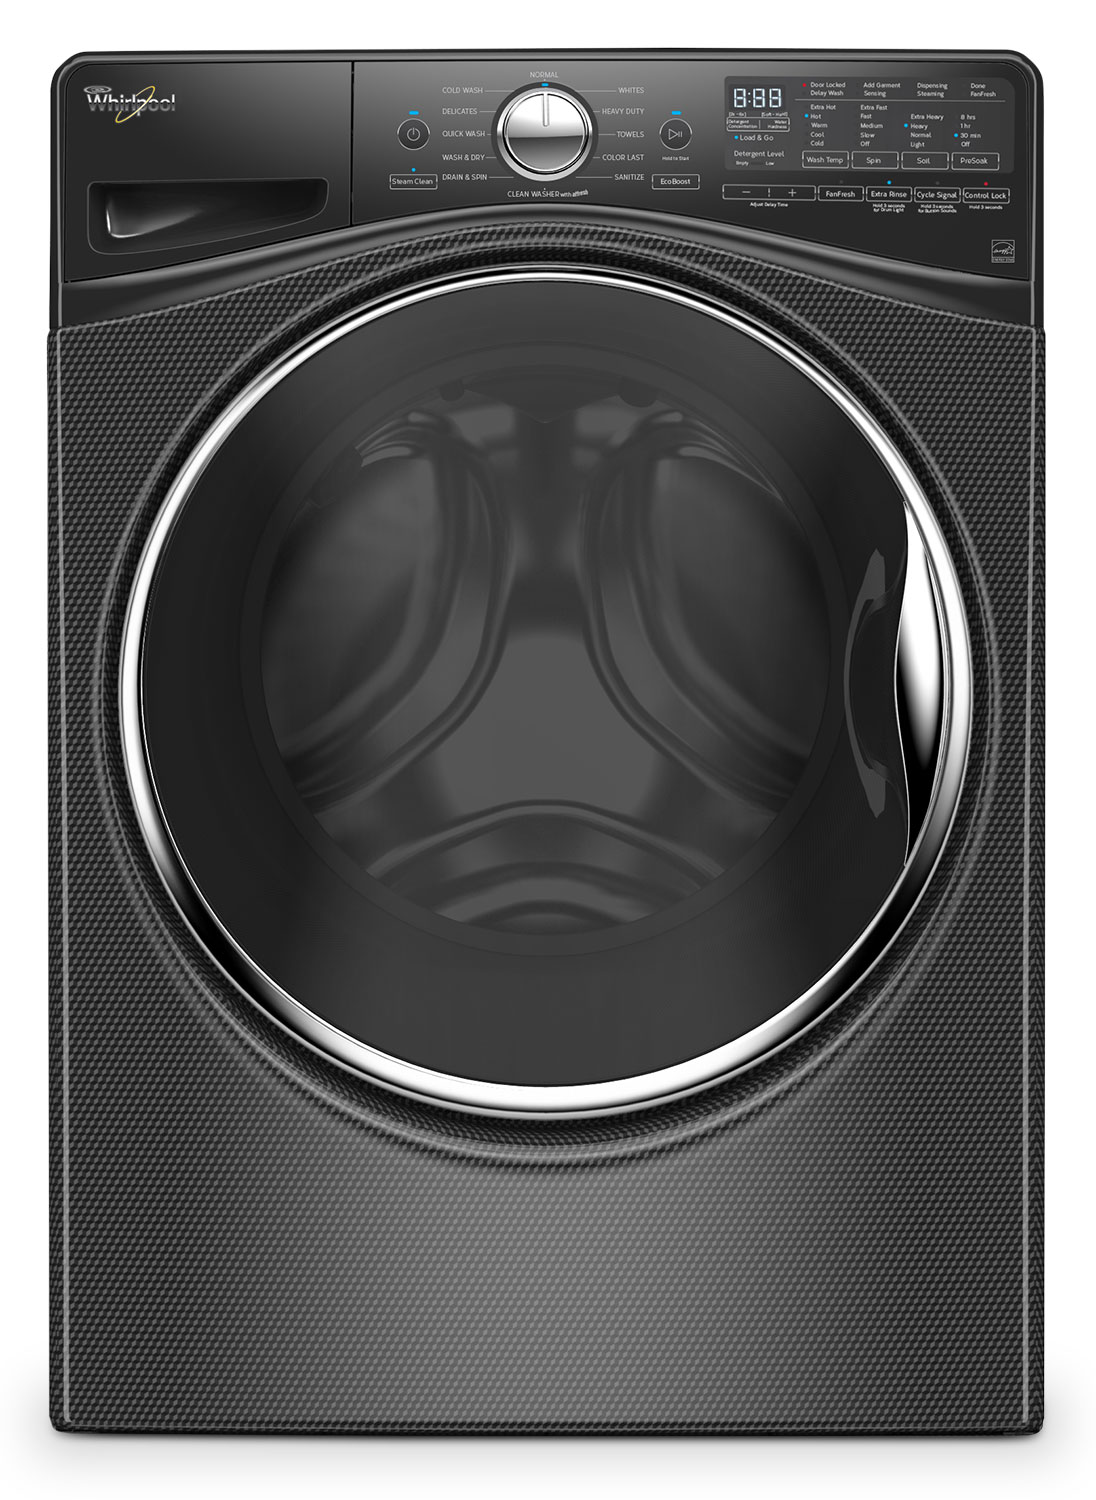 Whirlpool Black Diamond Front-Load Washer (5.2 Cu. Ft. IEC) - WFW92HEFBD